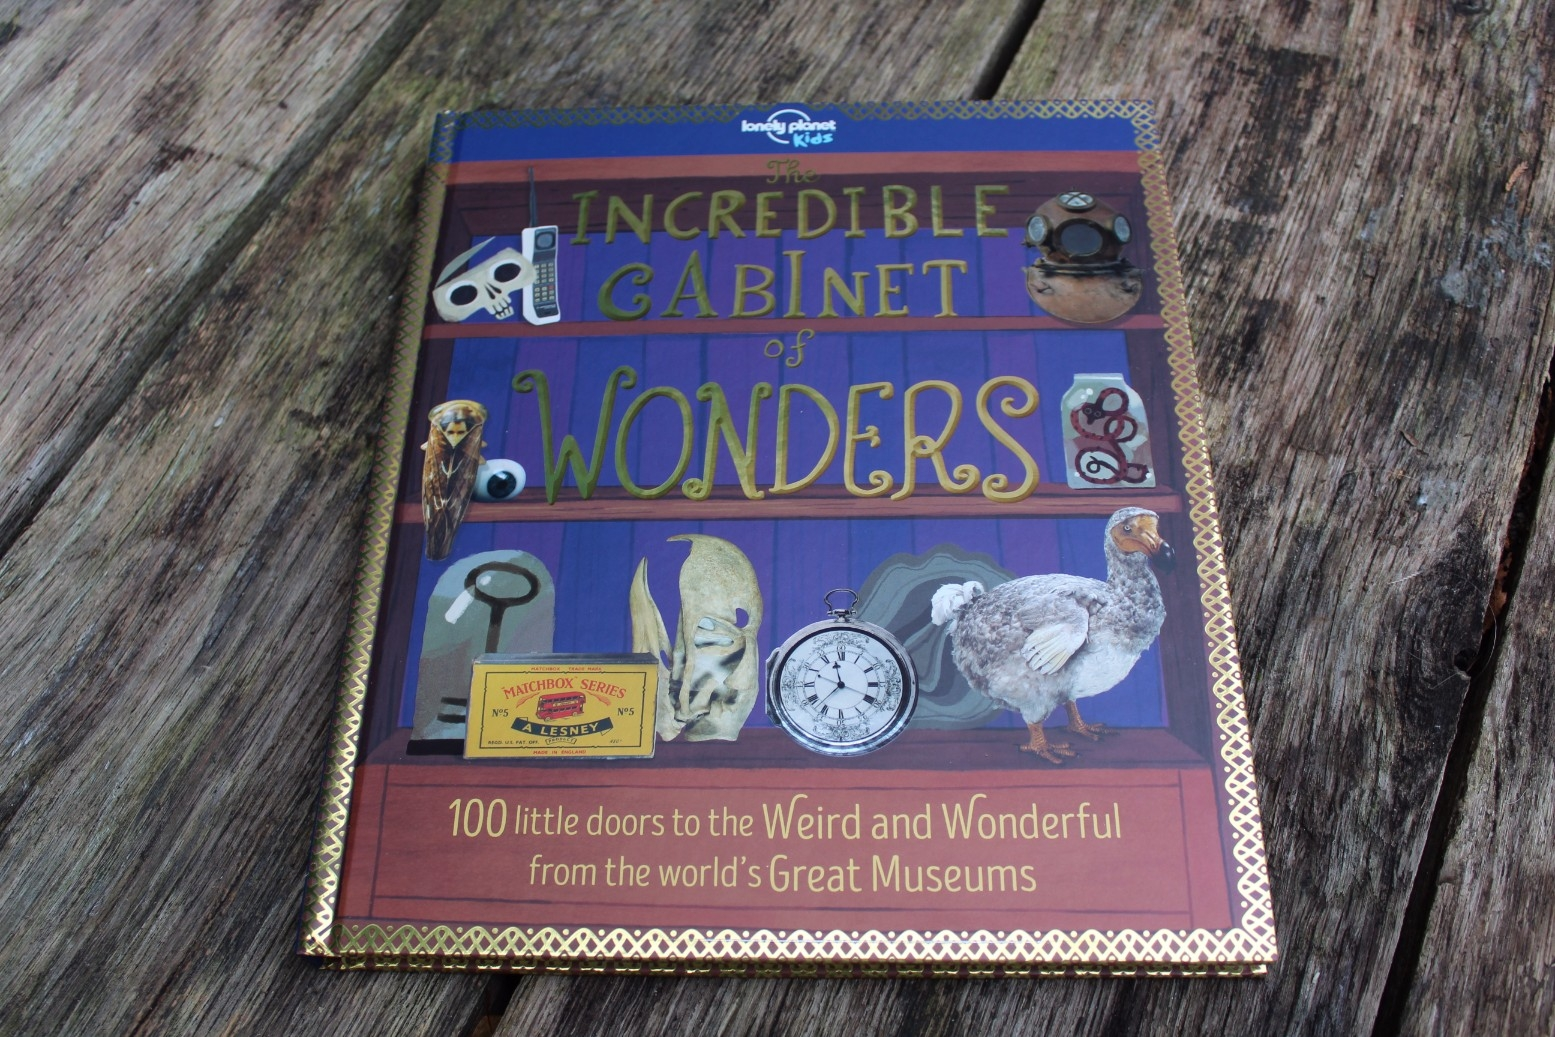 Lonely Planet Kids Incredible Cabinet of Wonders (2)